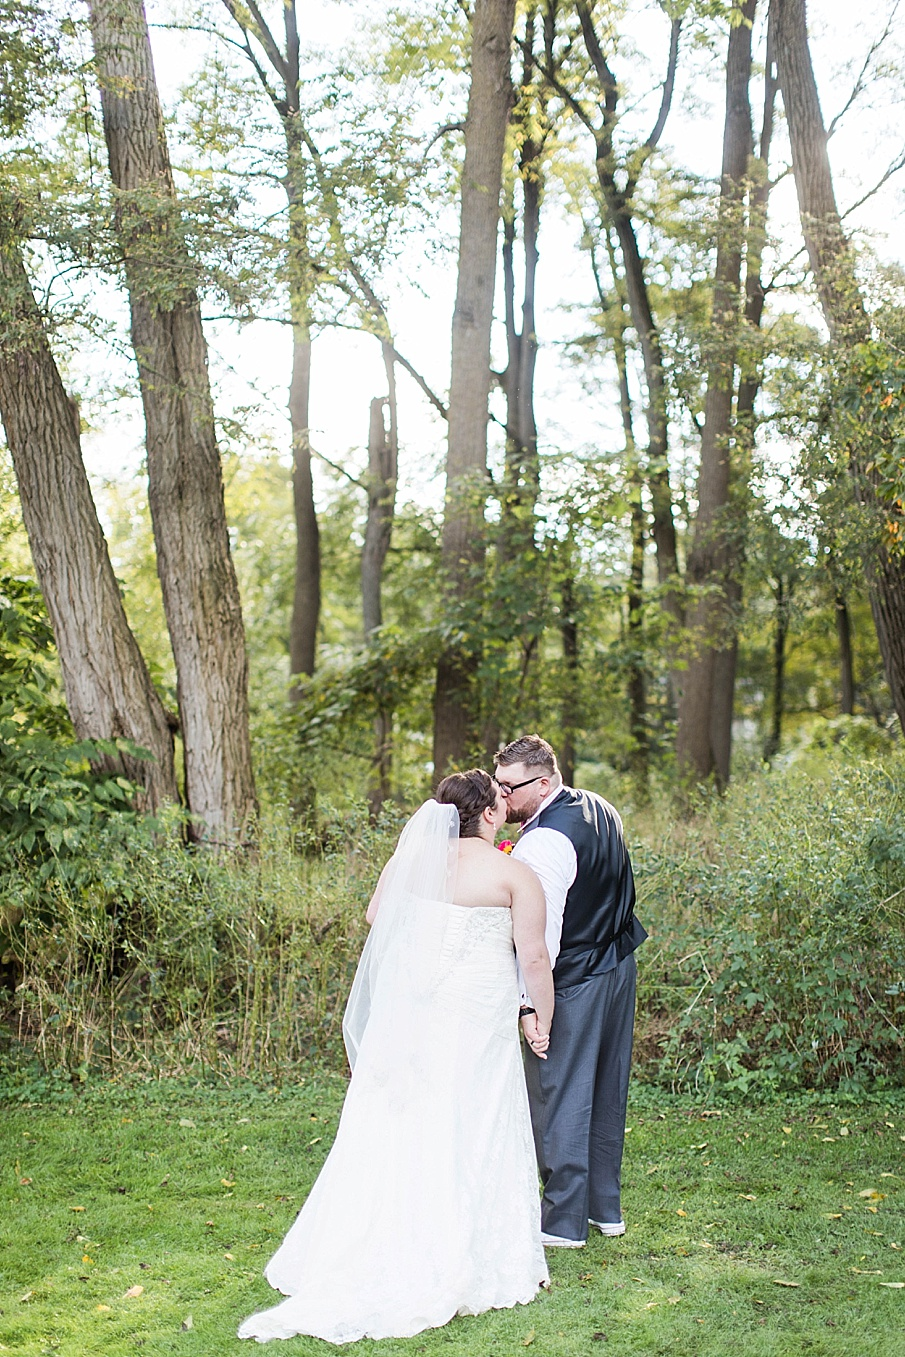 senecaryanco-pennsylvania-wedding-photographer-scranton-farmatcottrelllake_0370.jpg